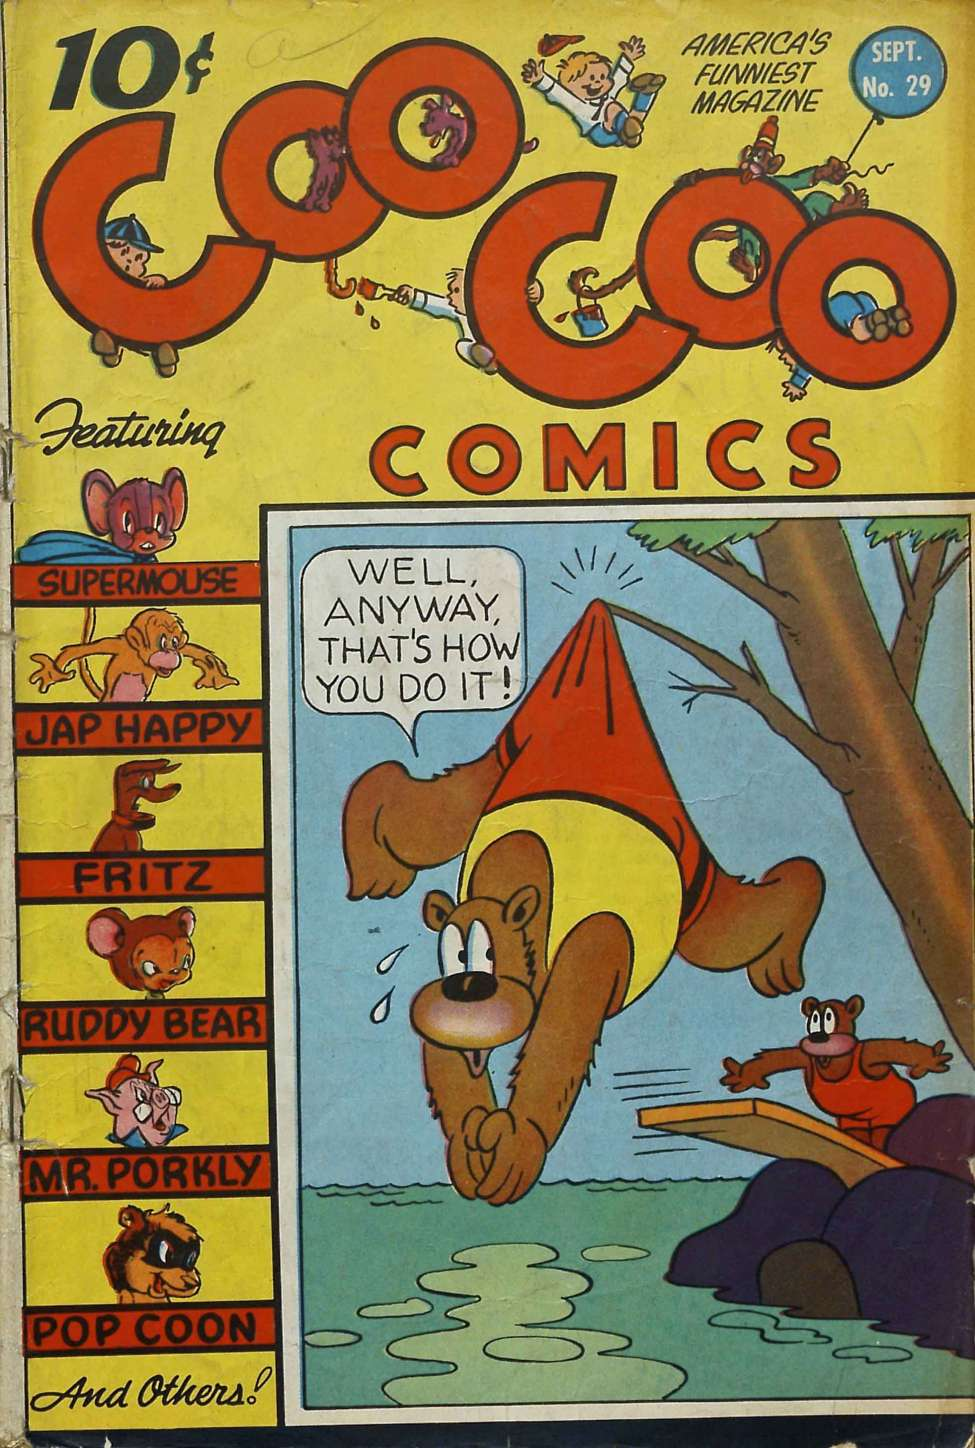 Comic Book Cover For Coo Coo Comics #29